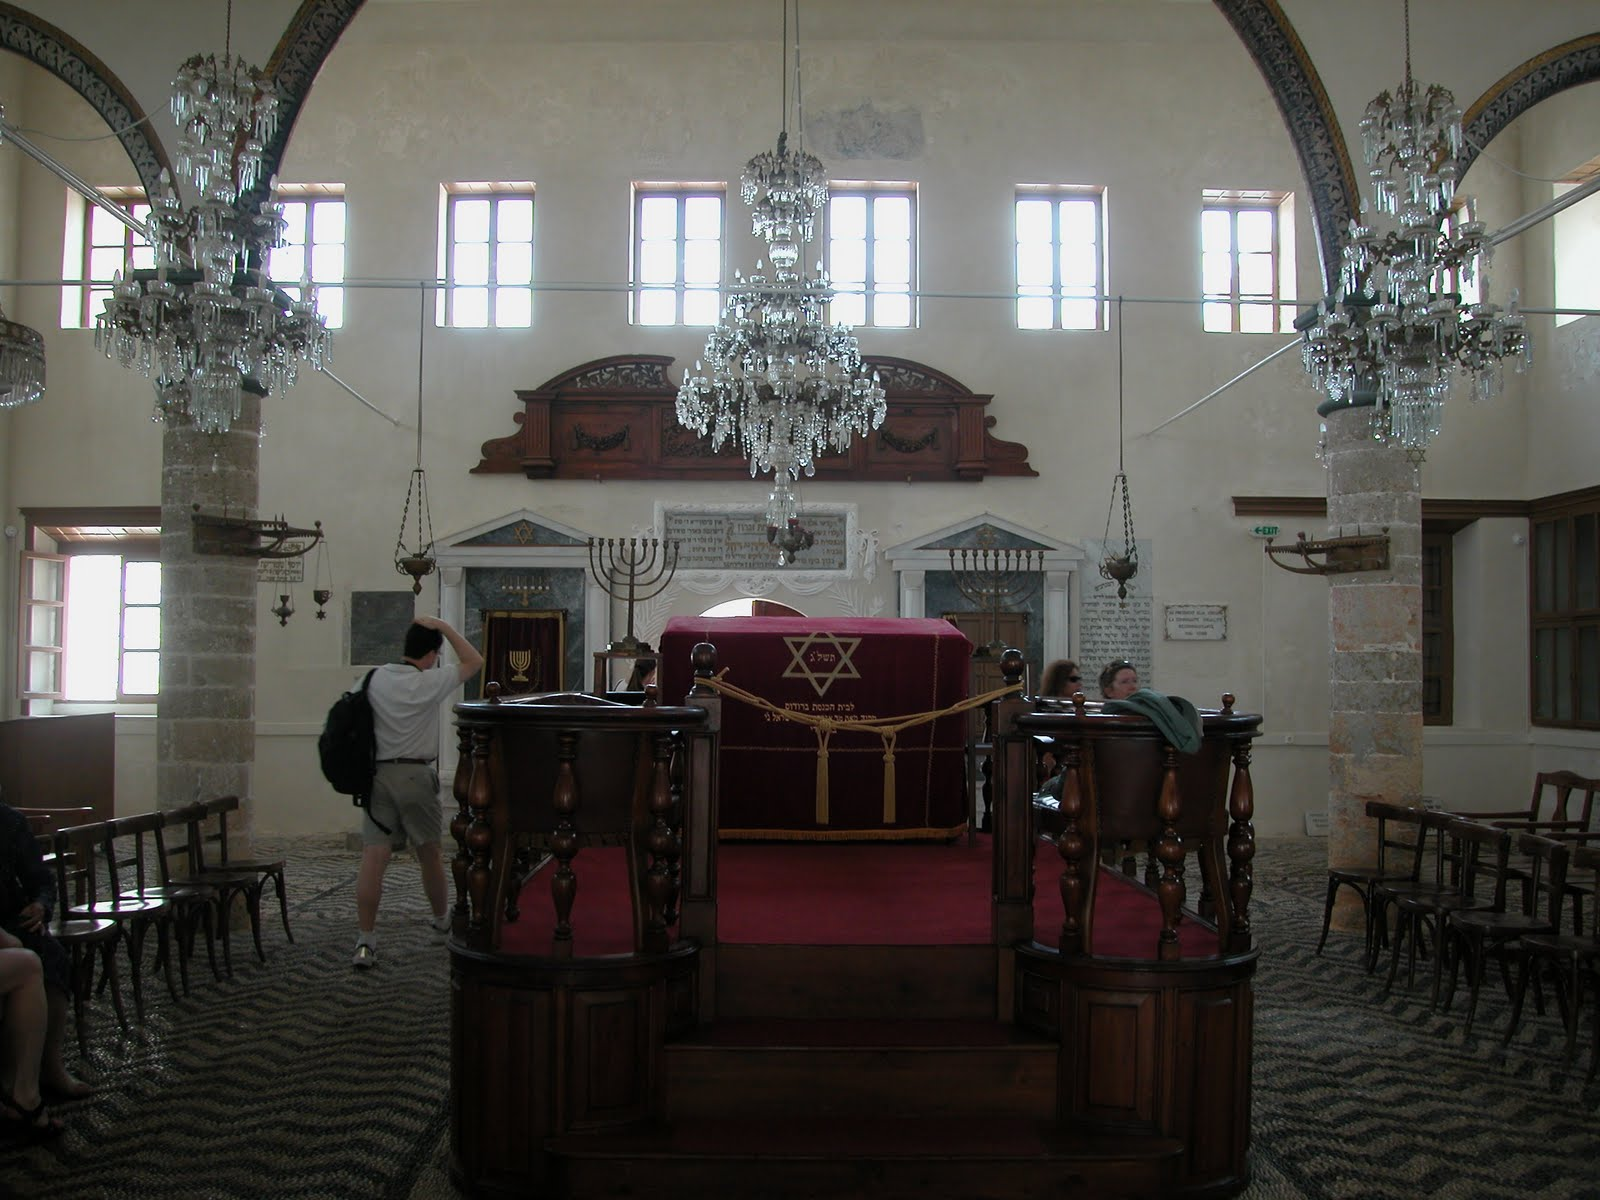 The Synagogue Shalom